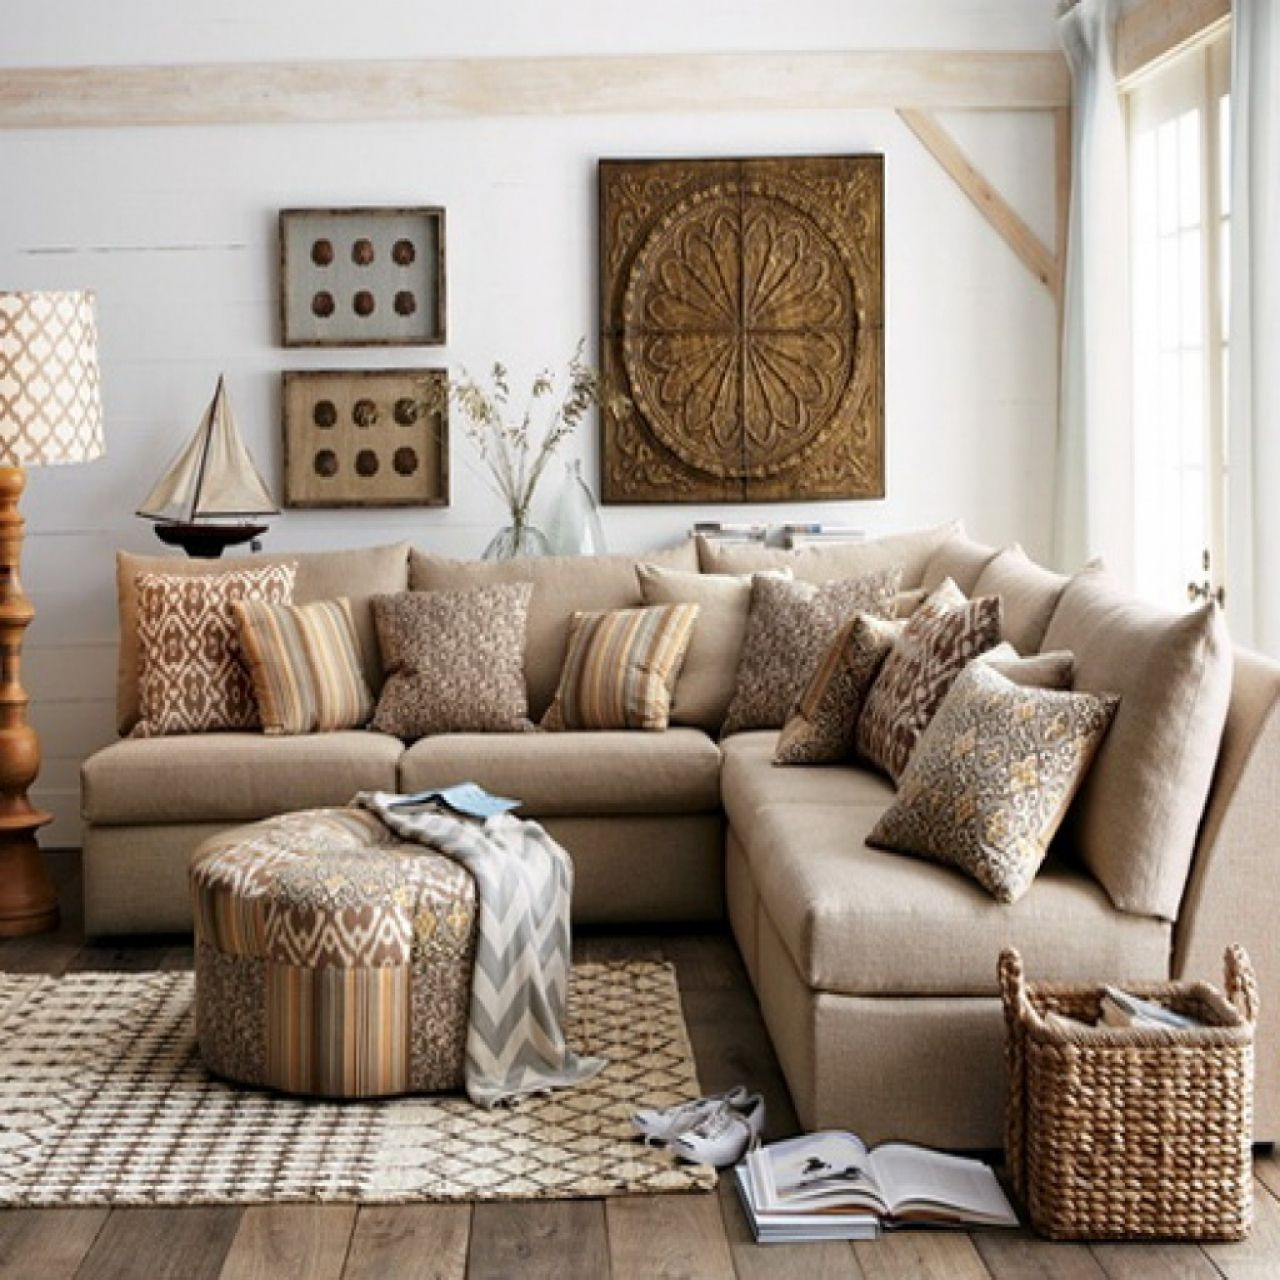 Small Living Room Ideas Pinterest Home And Furniture Modern Farmhouse Living Room Decor Farmhouse Decor Living Room Farm House Living Room